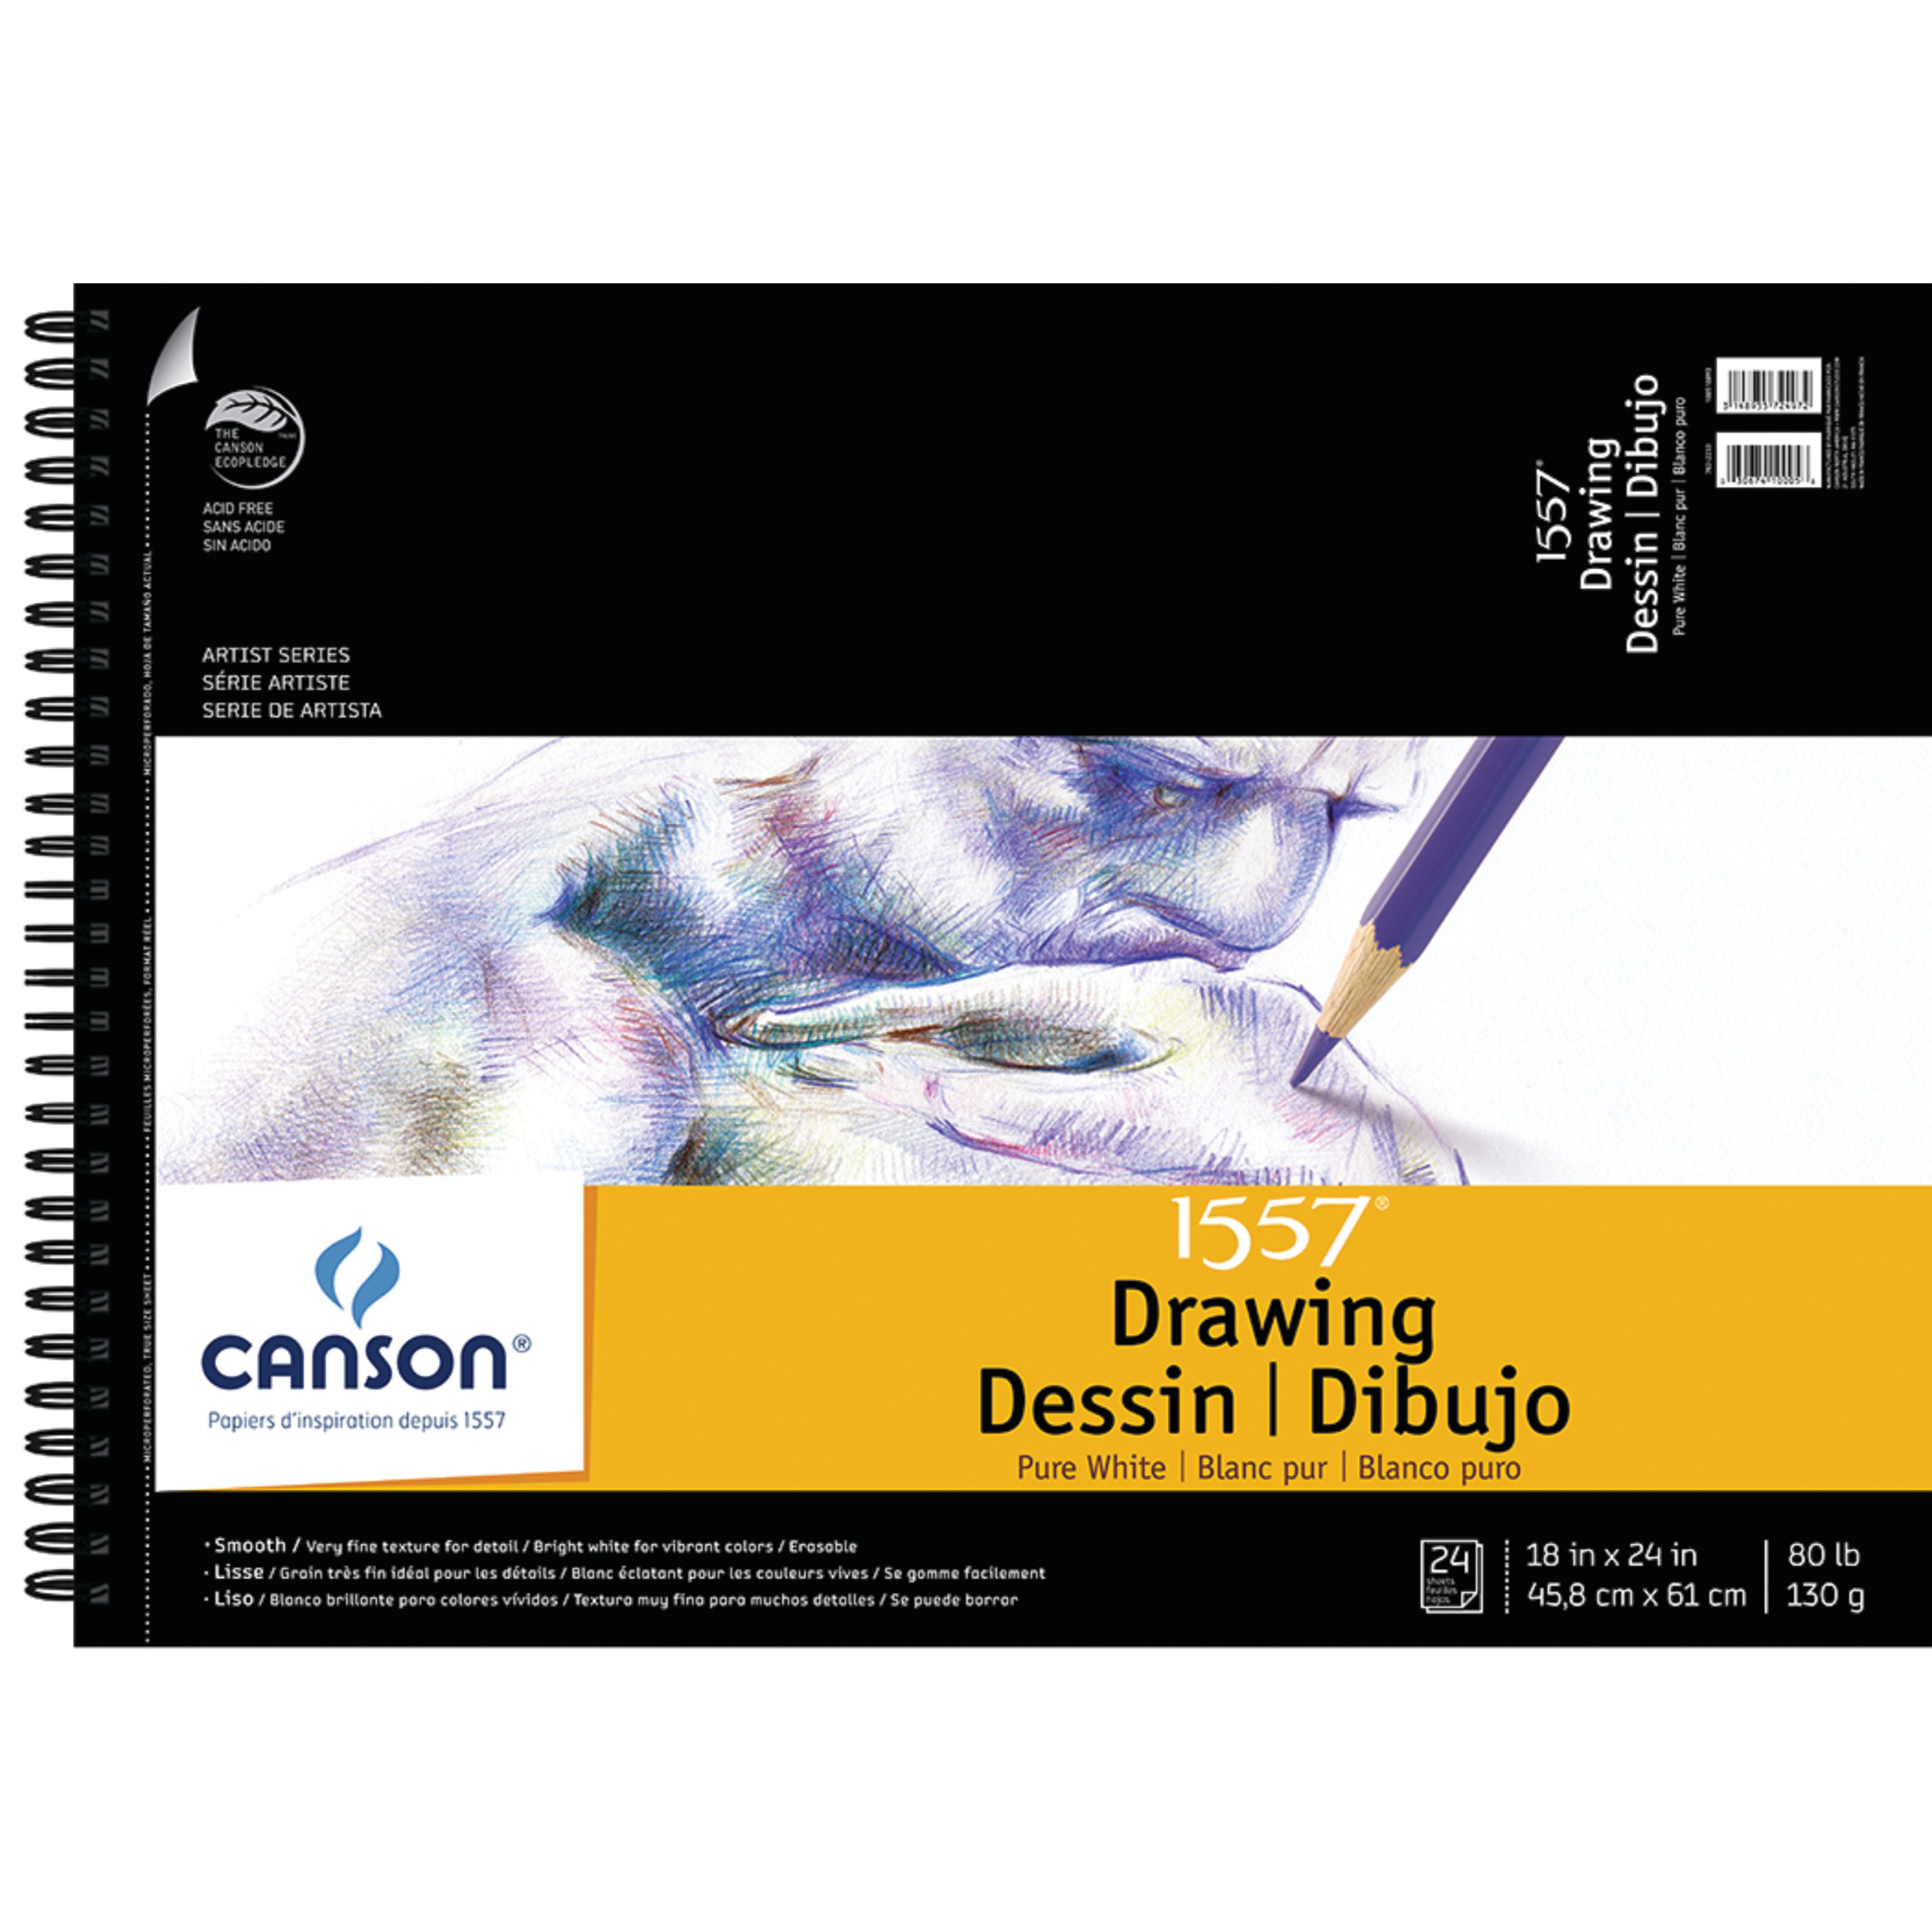 Canson Artist Series C A Grain Drawing Pad, 18in x 24in, 20 Sheets/Pad